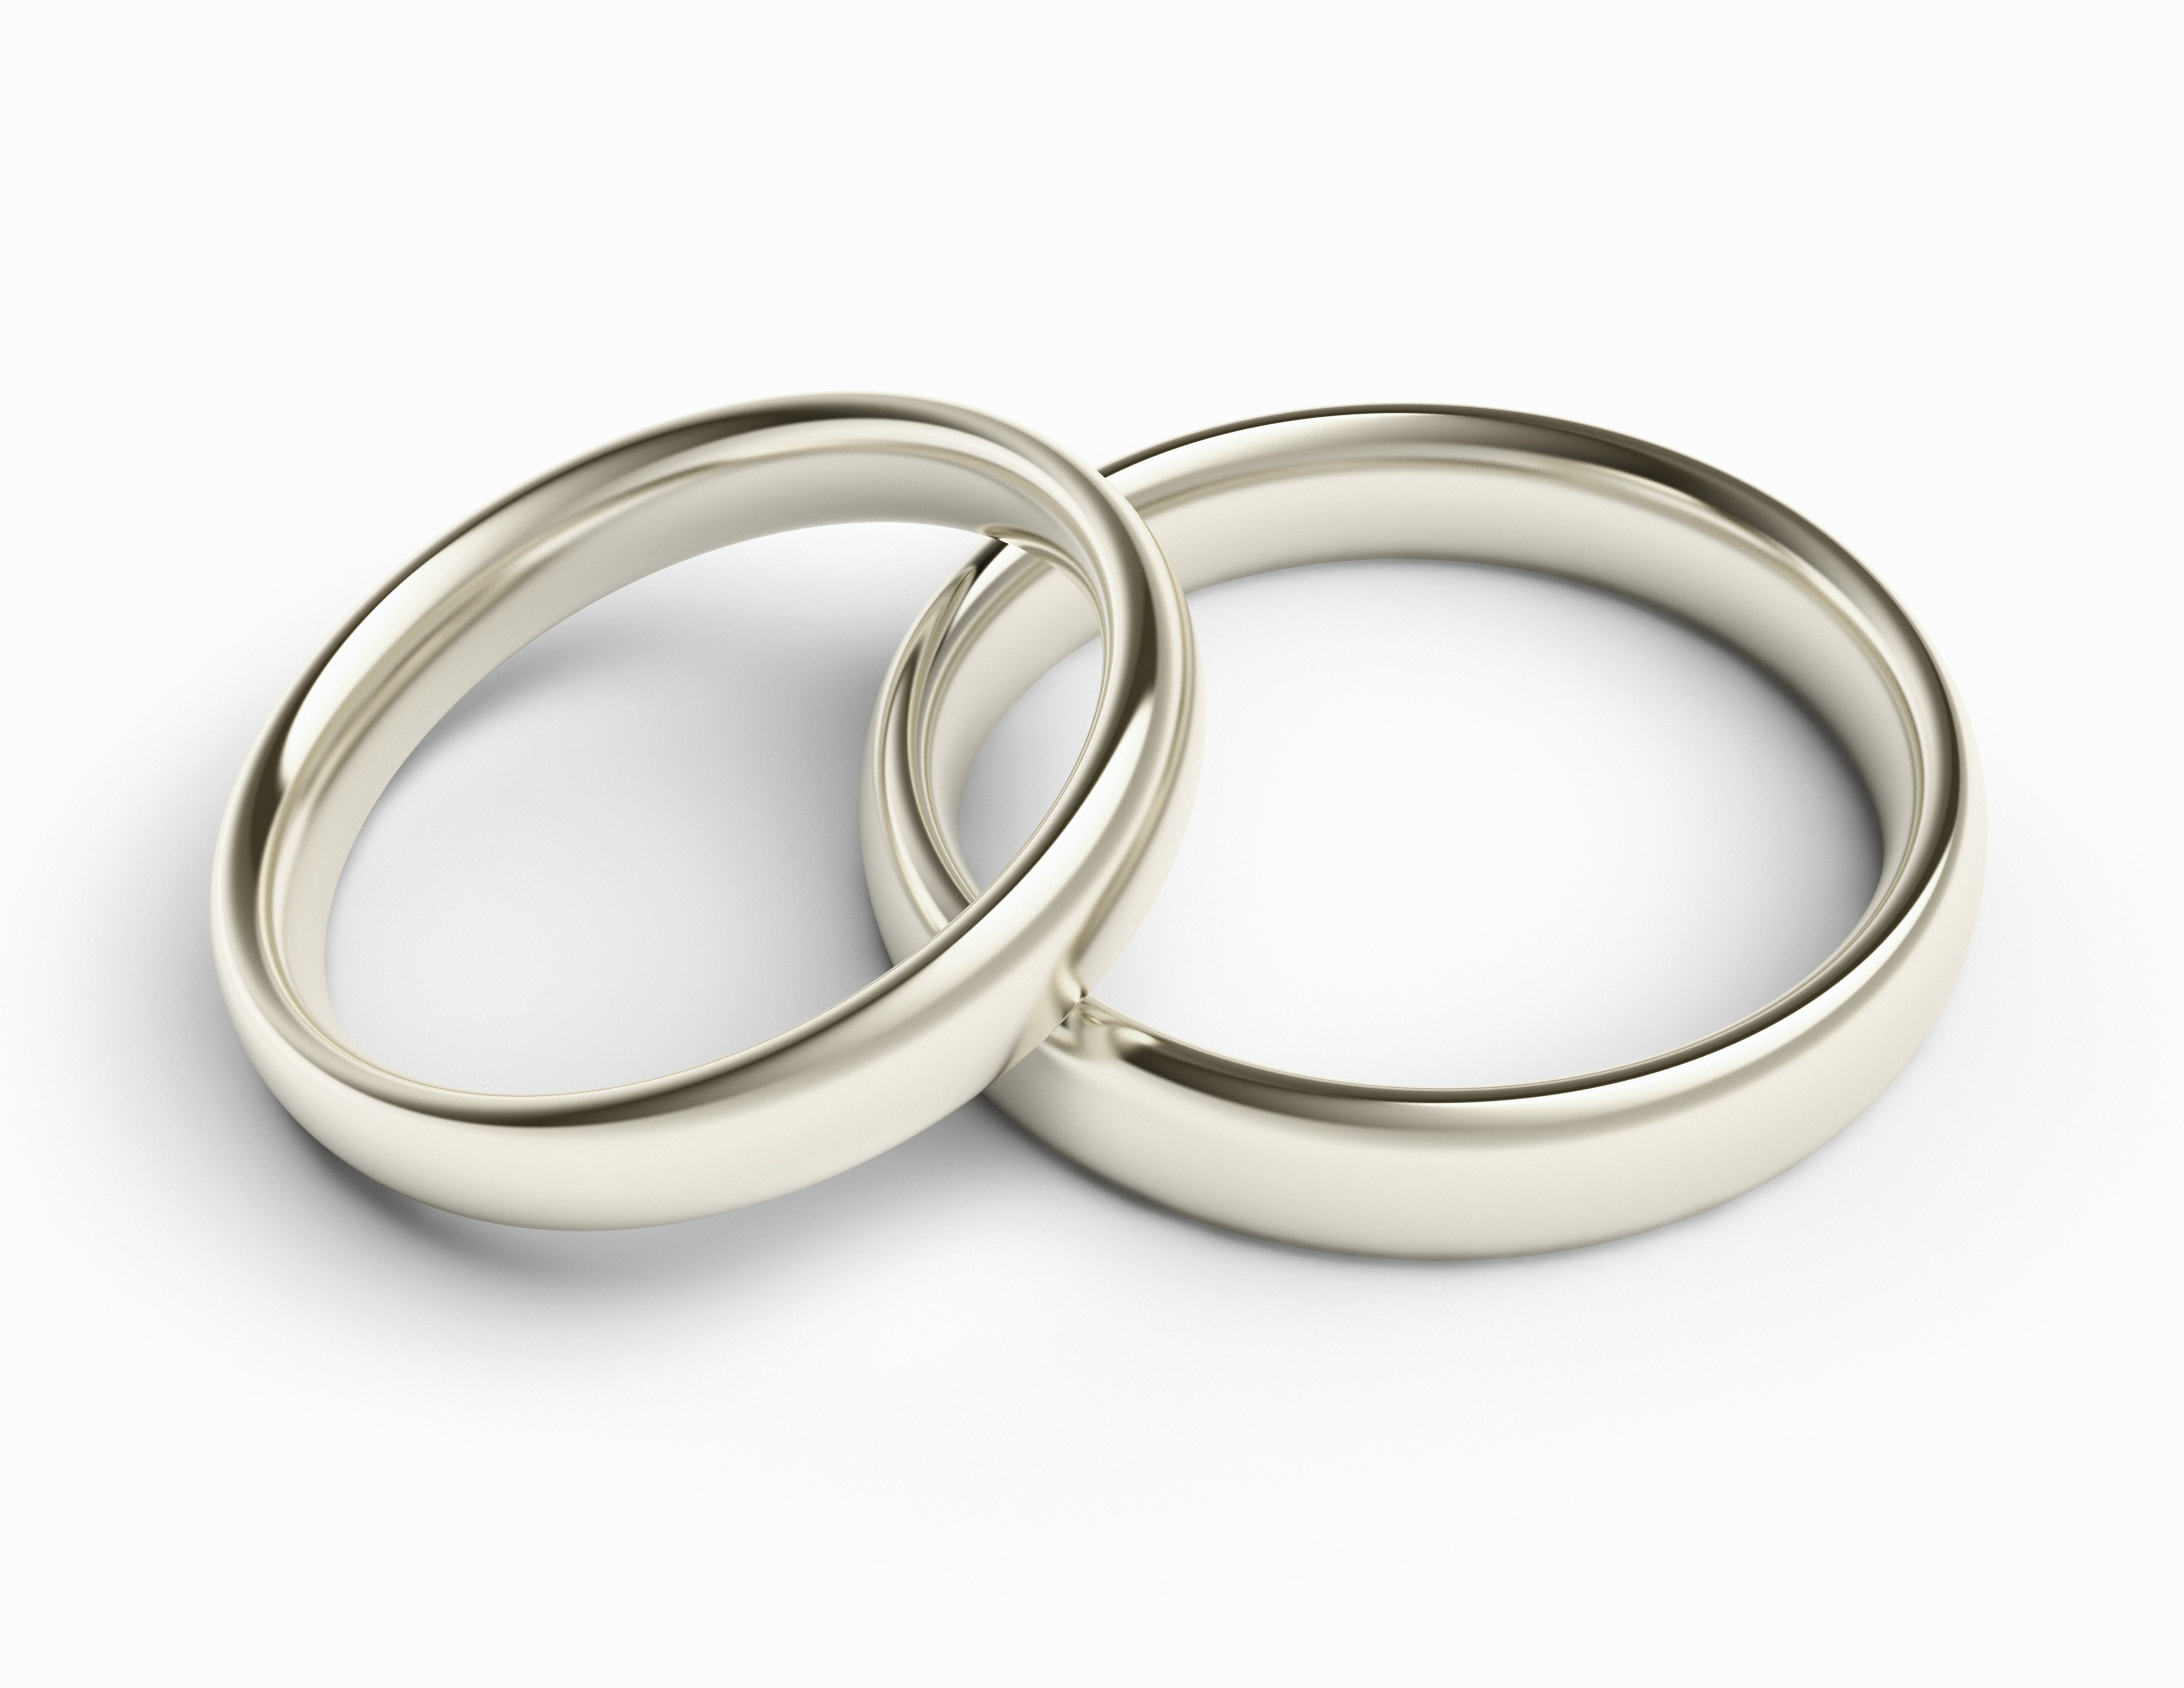 2 wedding rings picture - The Wedding Ring